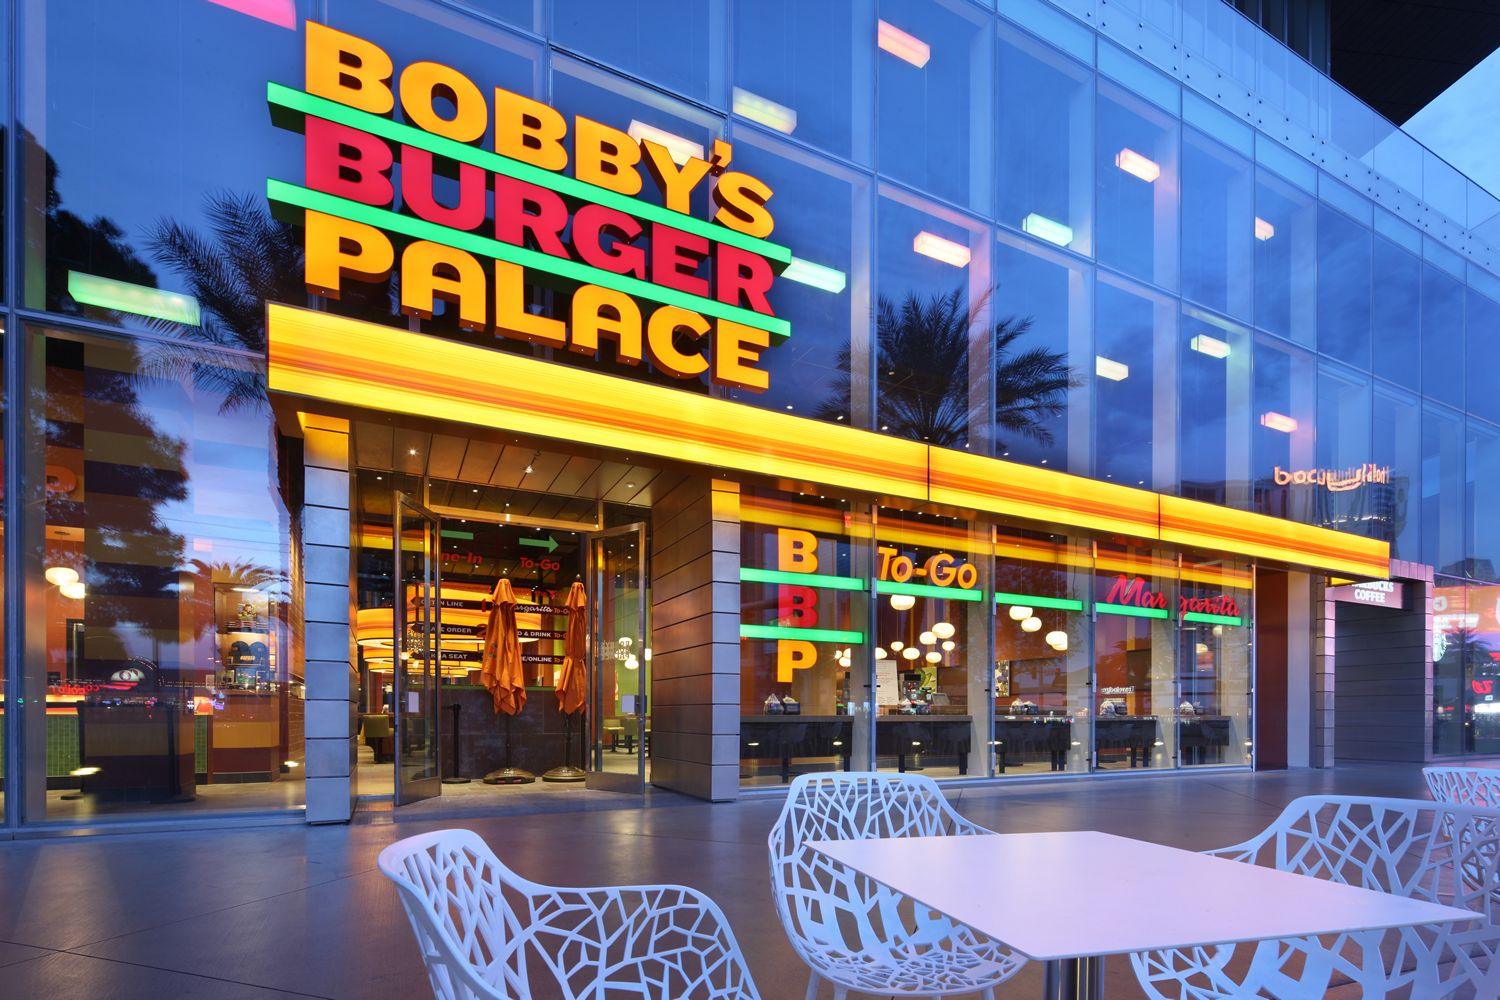 Bobby's Burger Palace Announces Global Licensing Program